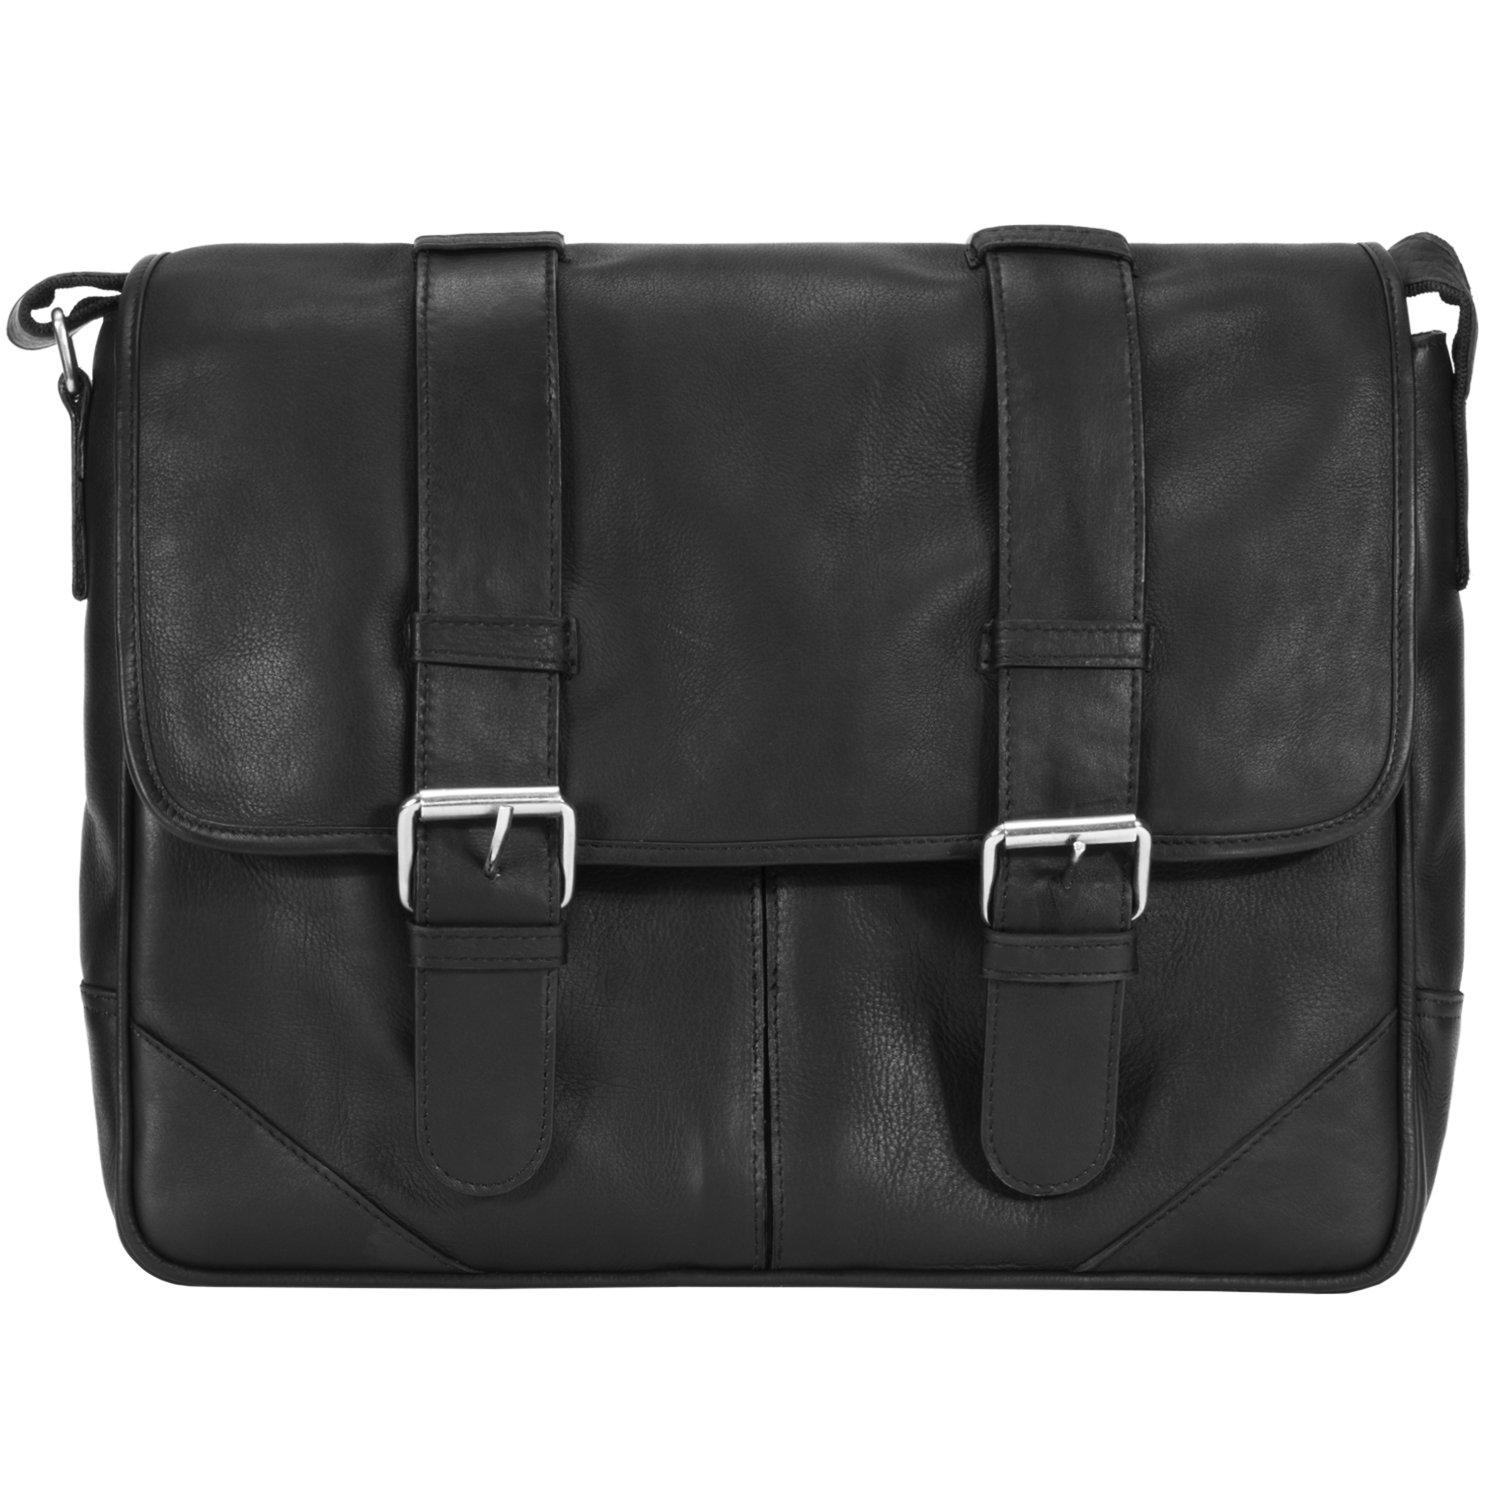 Muiska Leather 15'' Laptop Computer Messenger Bag Shoulder Crossbody Sling Briefcase with Removable PC Sleeve, Black